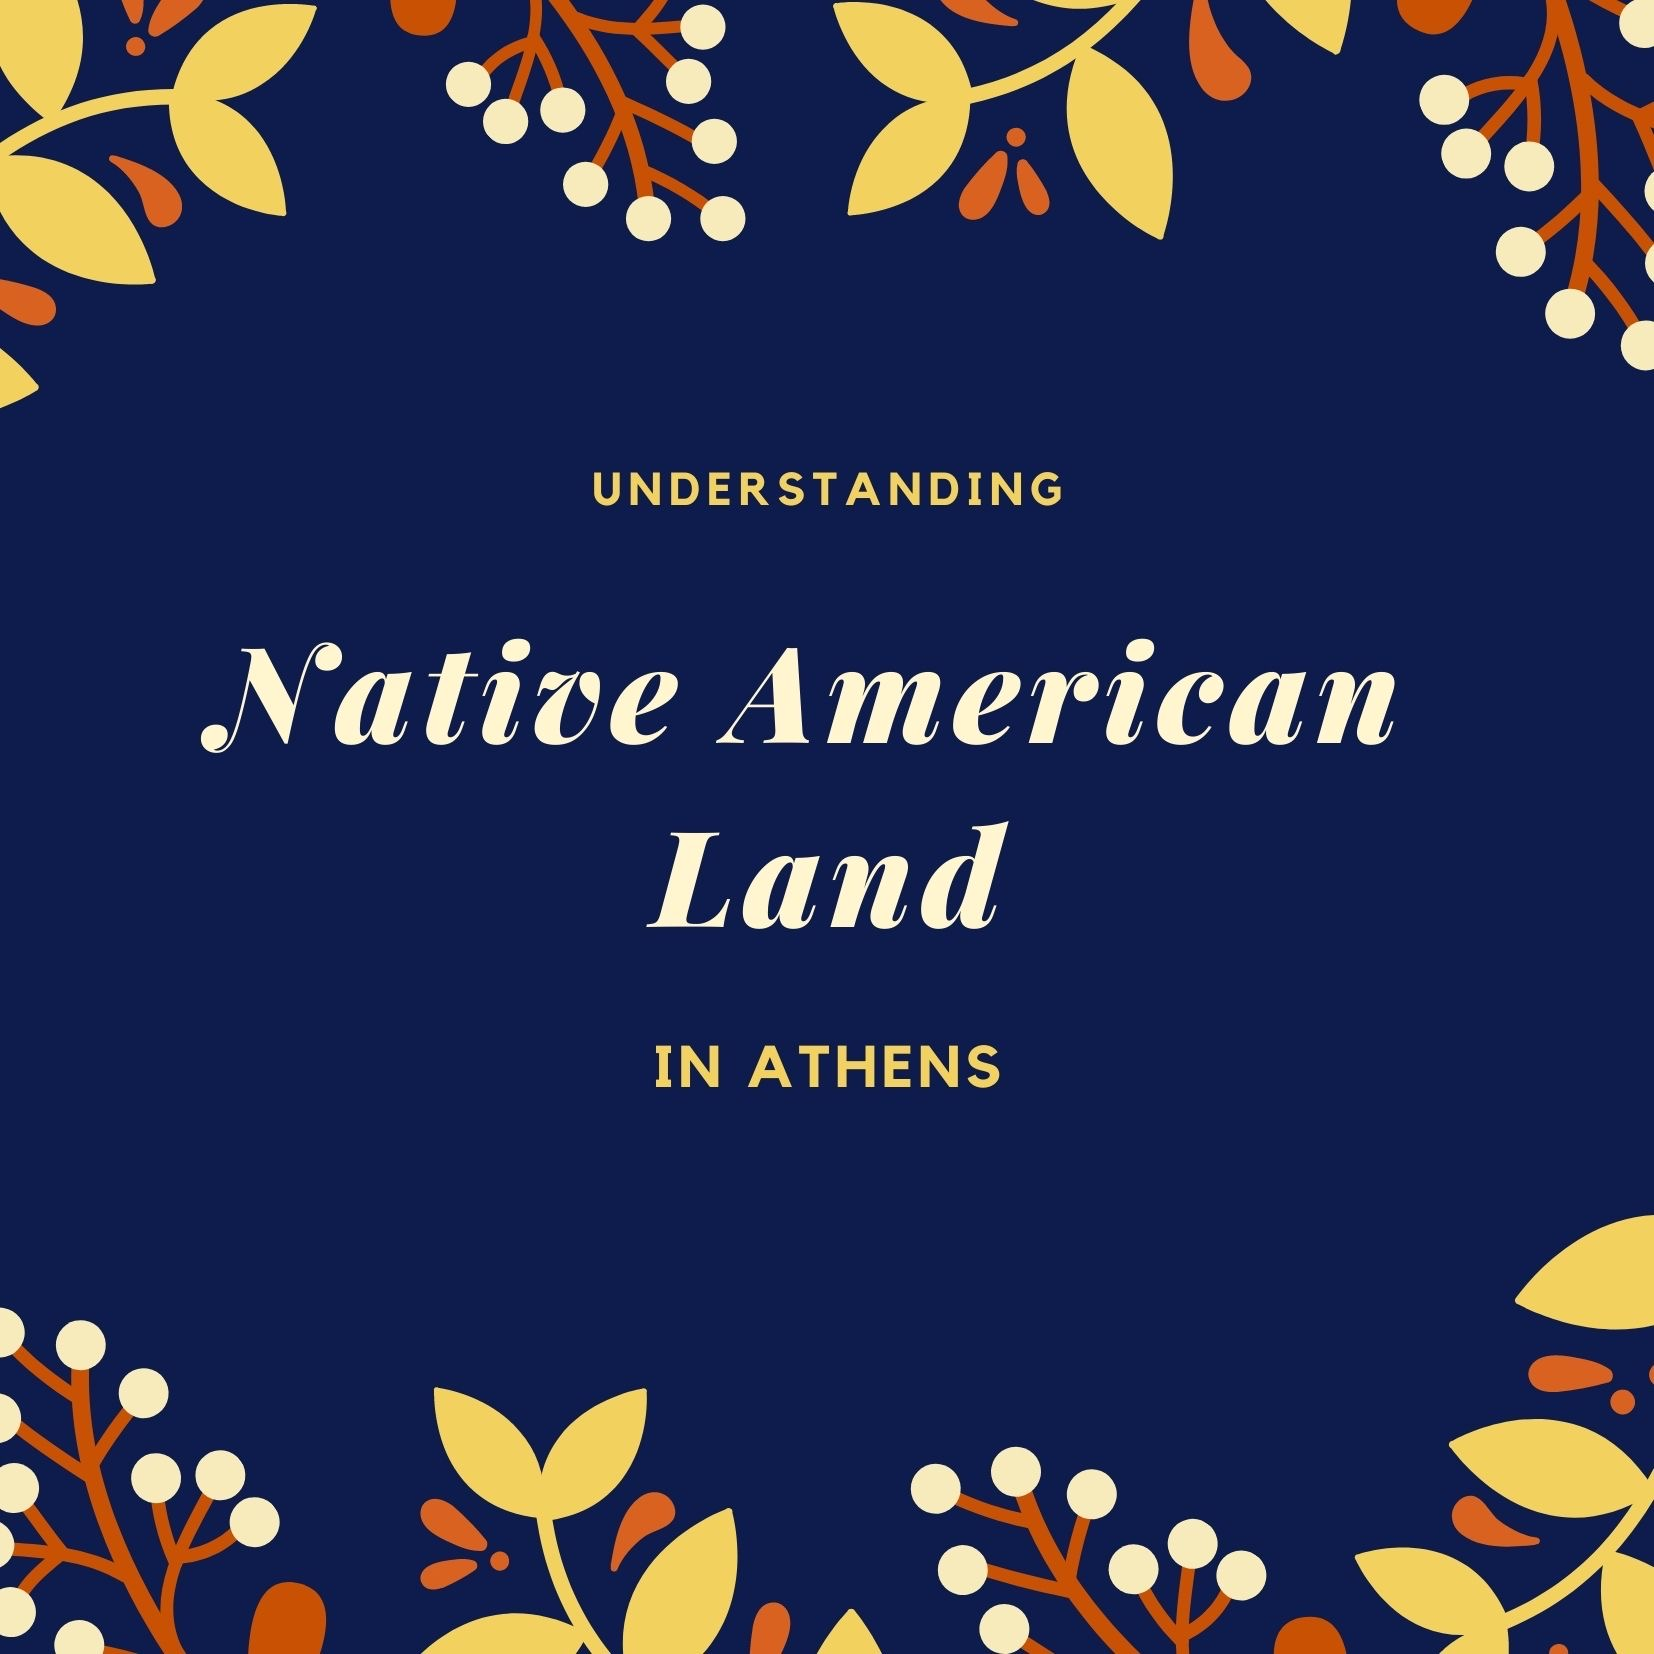 Native American Land in Athens